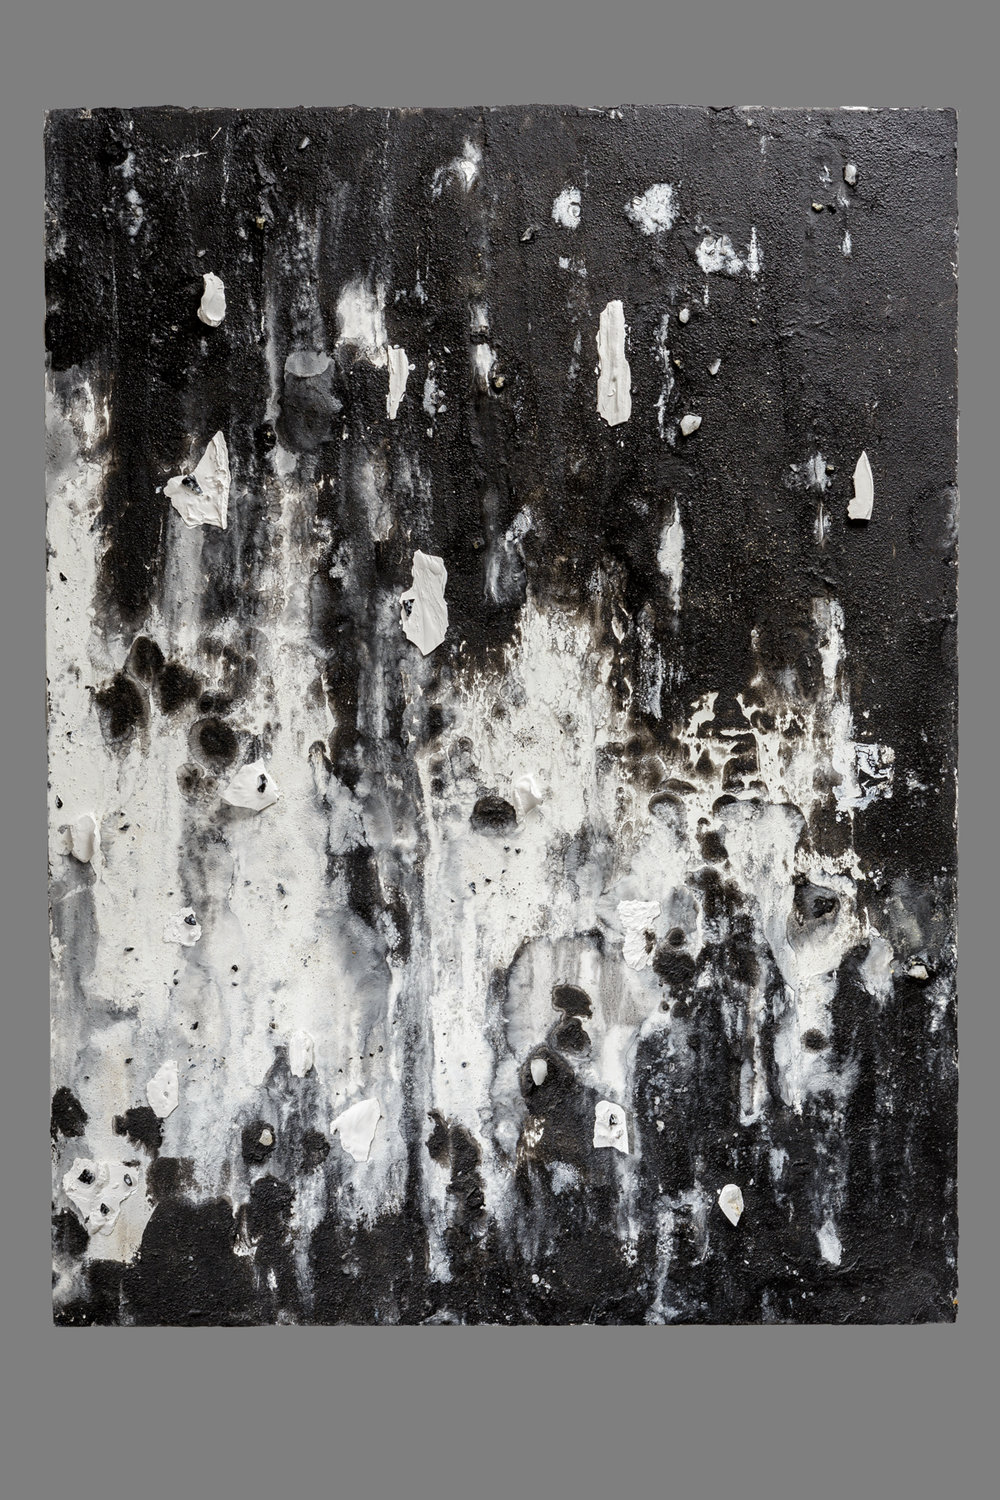 Noir  Oil, sand, wax, hydrocal fragments, quartz, obsidian and citrine 48 x 36 in. / 121.9 x 91.4 cm.